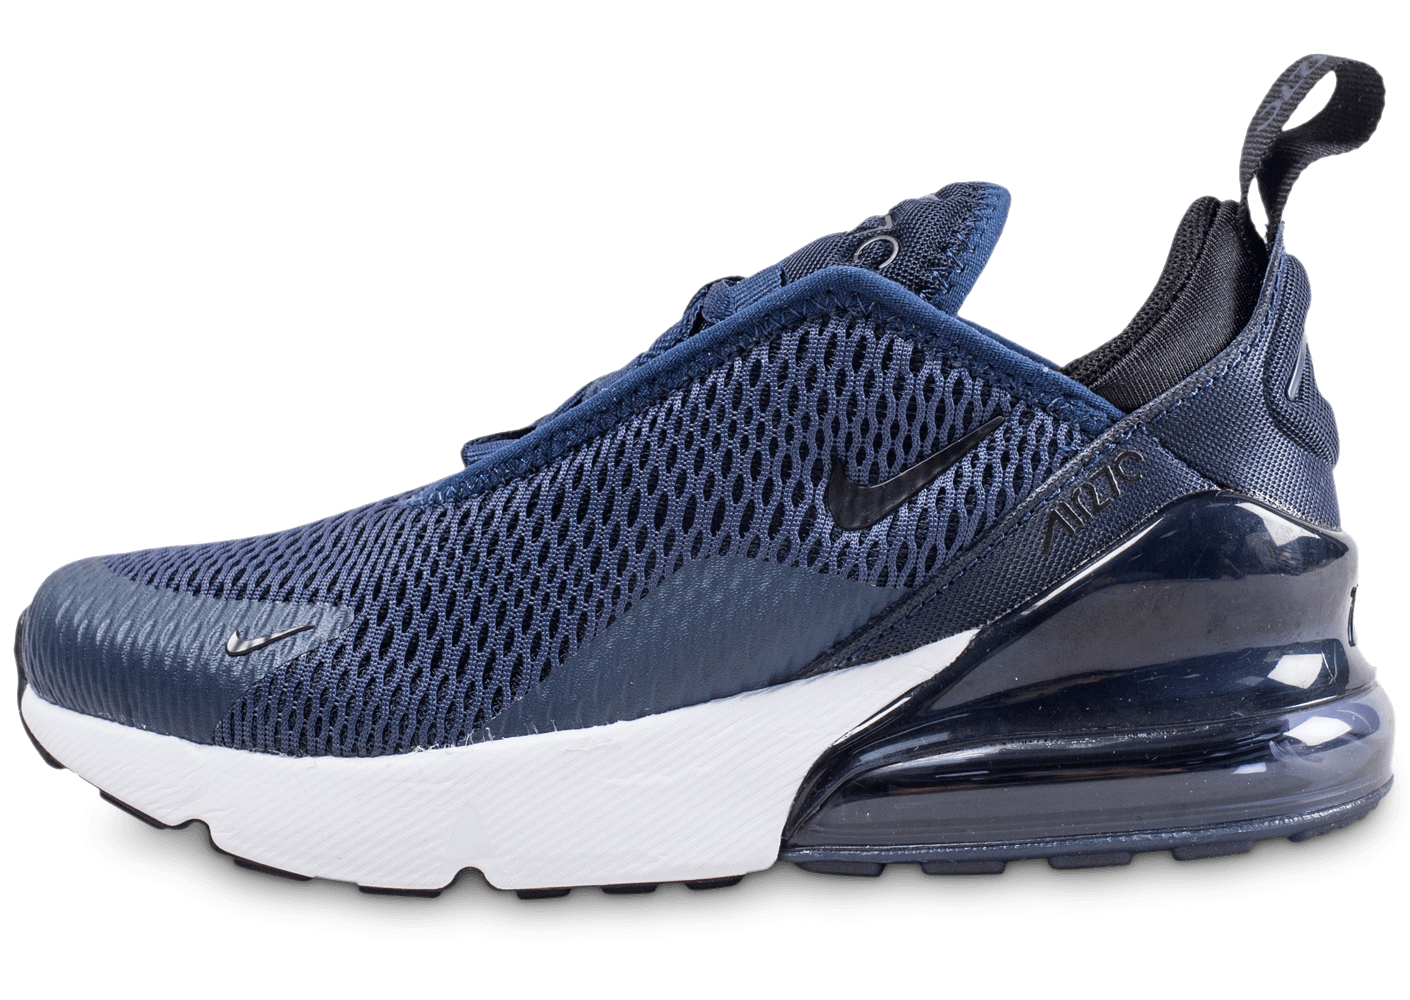 plus de photos 93d25 15d3b Nike Air Max 270 enfant bleu marine